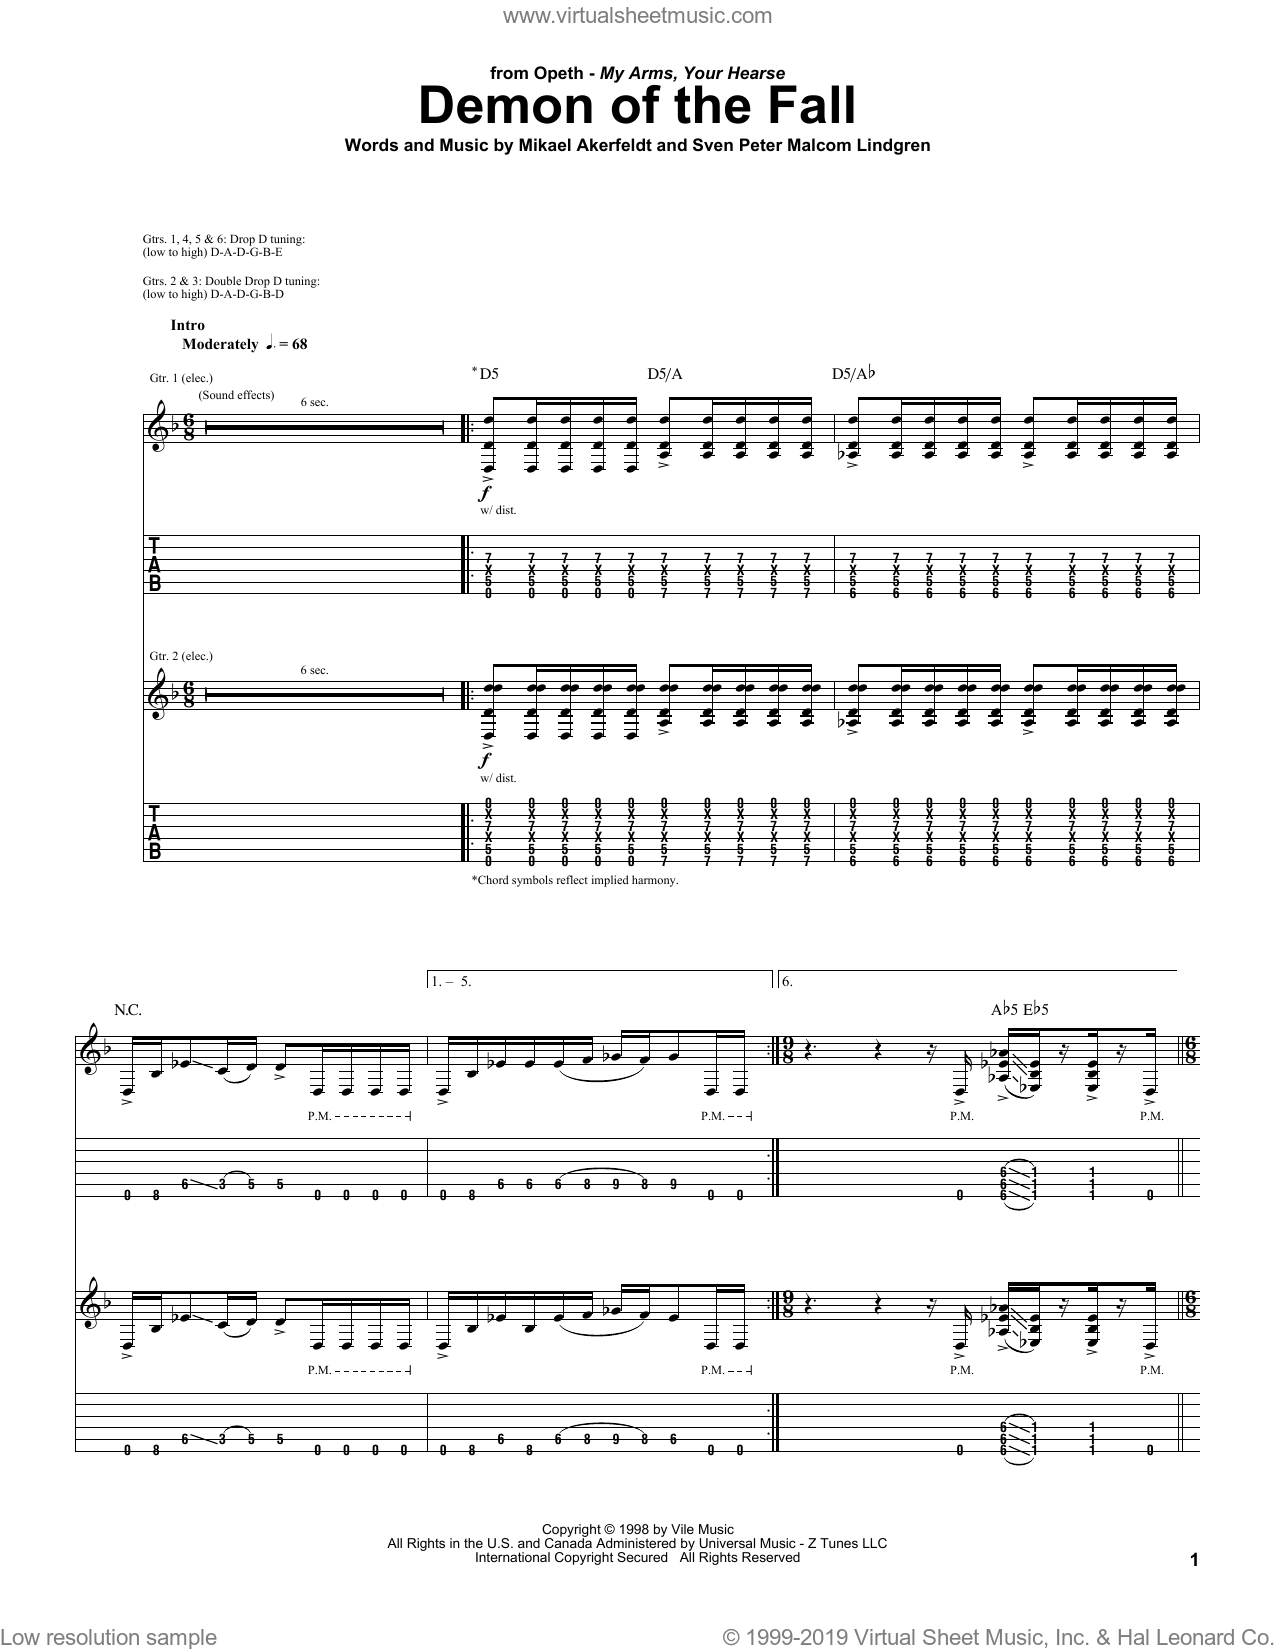 Demon Of The Fall sheet music for guitar (tablature) by Sven Peter Malcom Lindgren